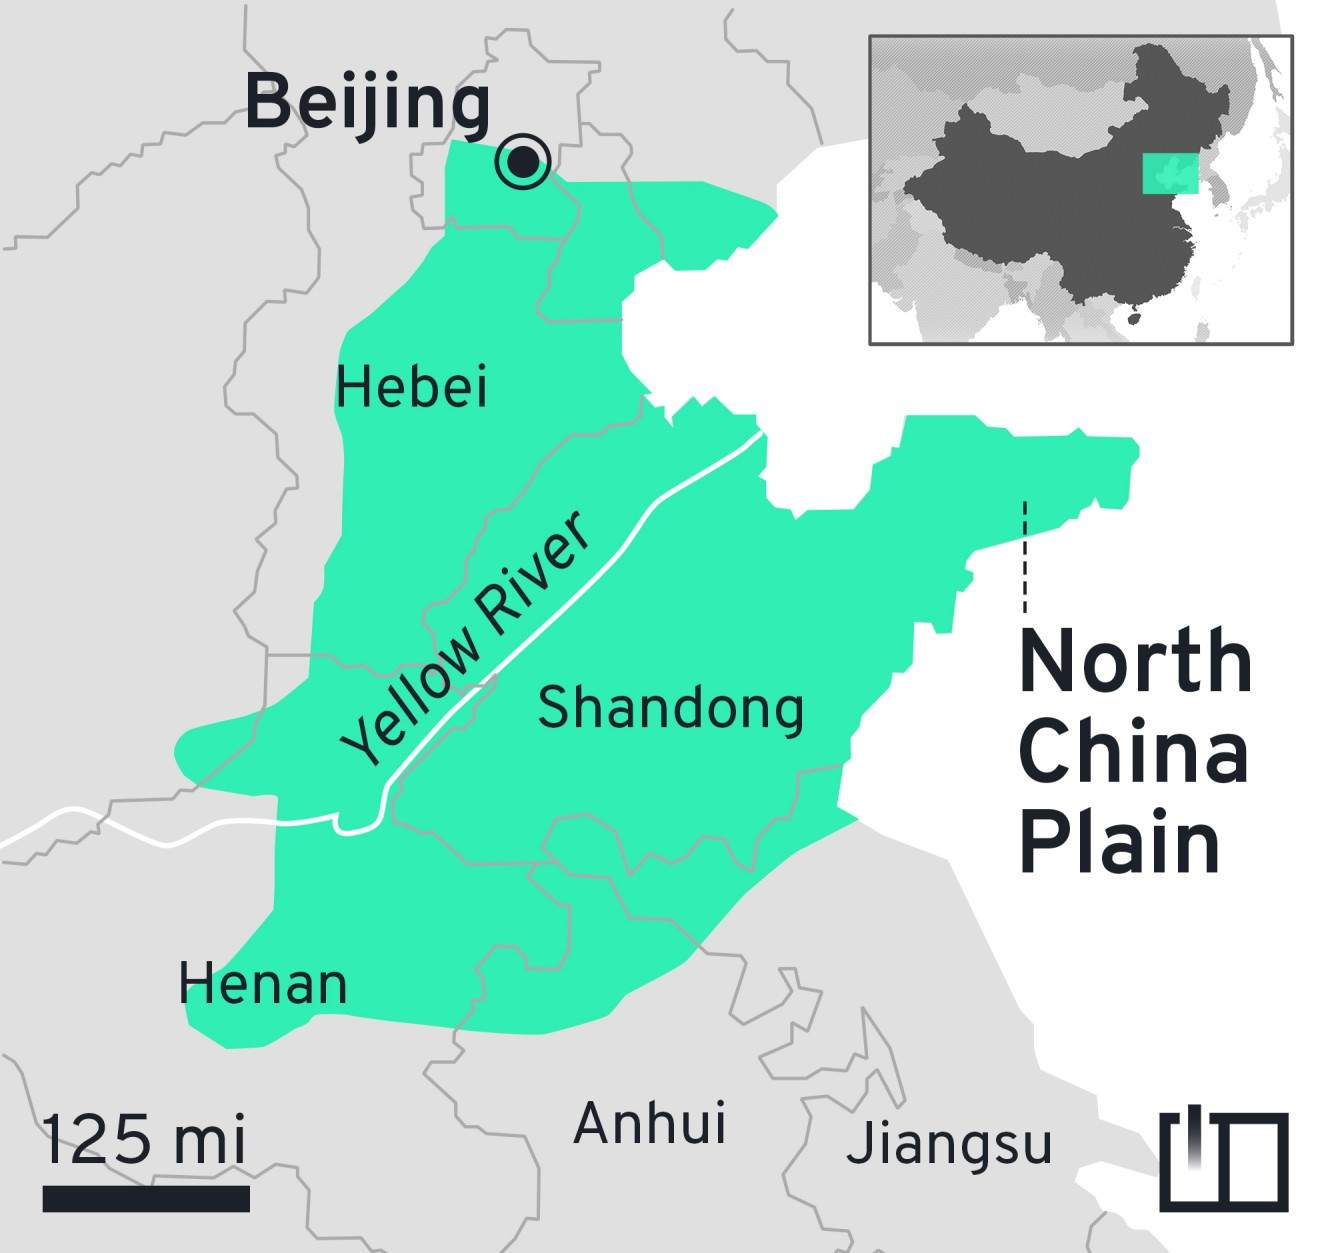 North China Plain